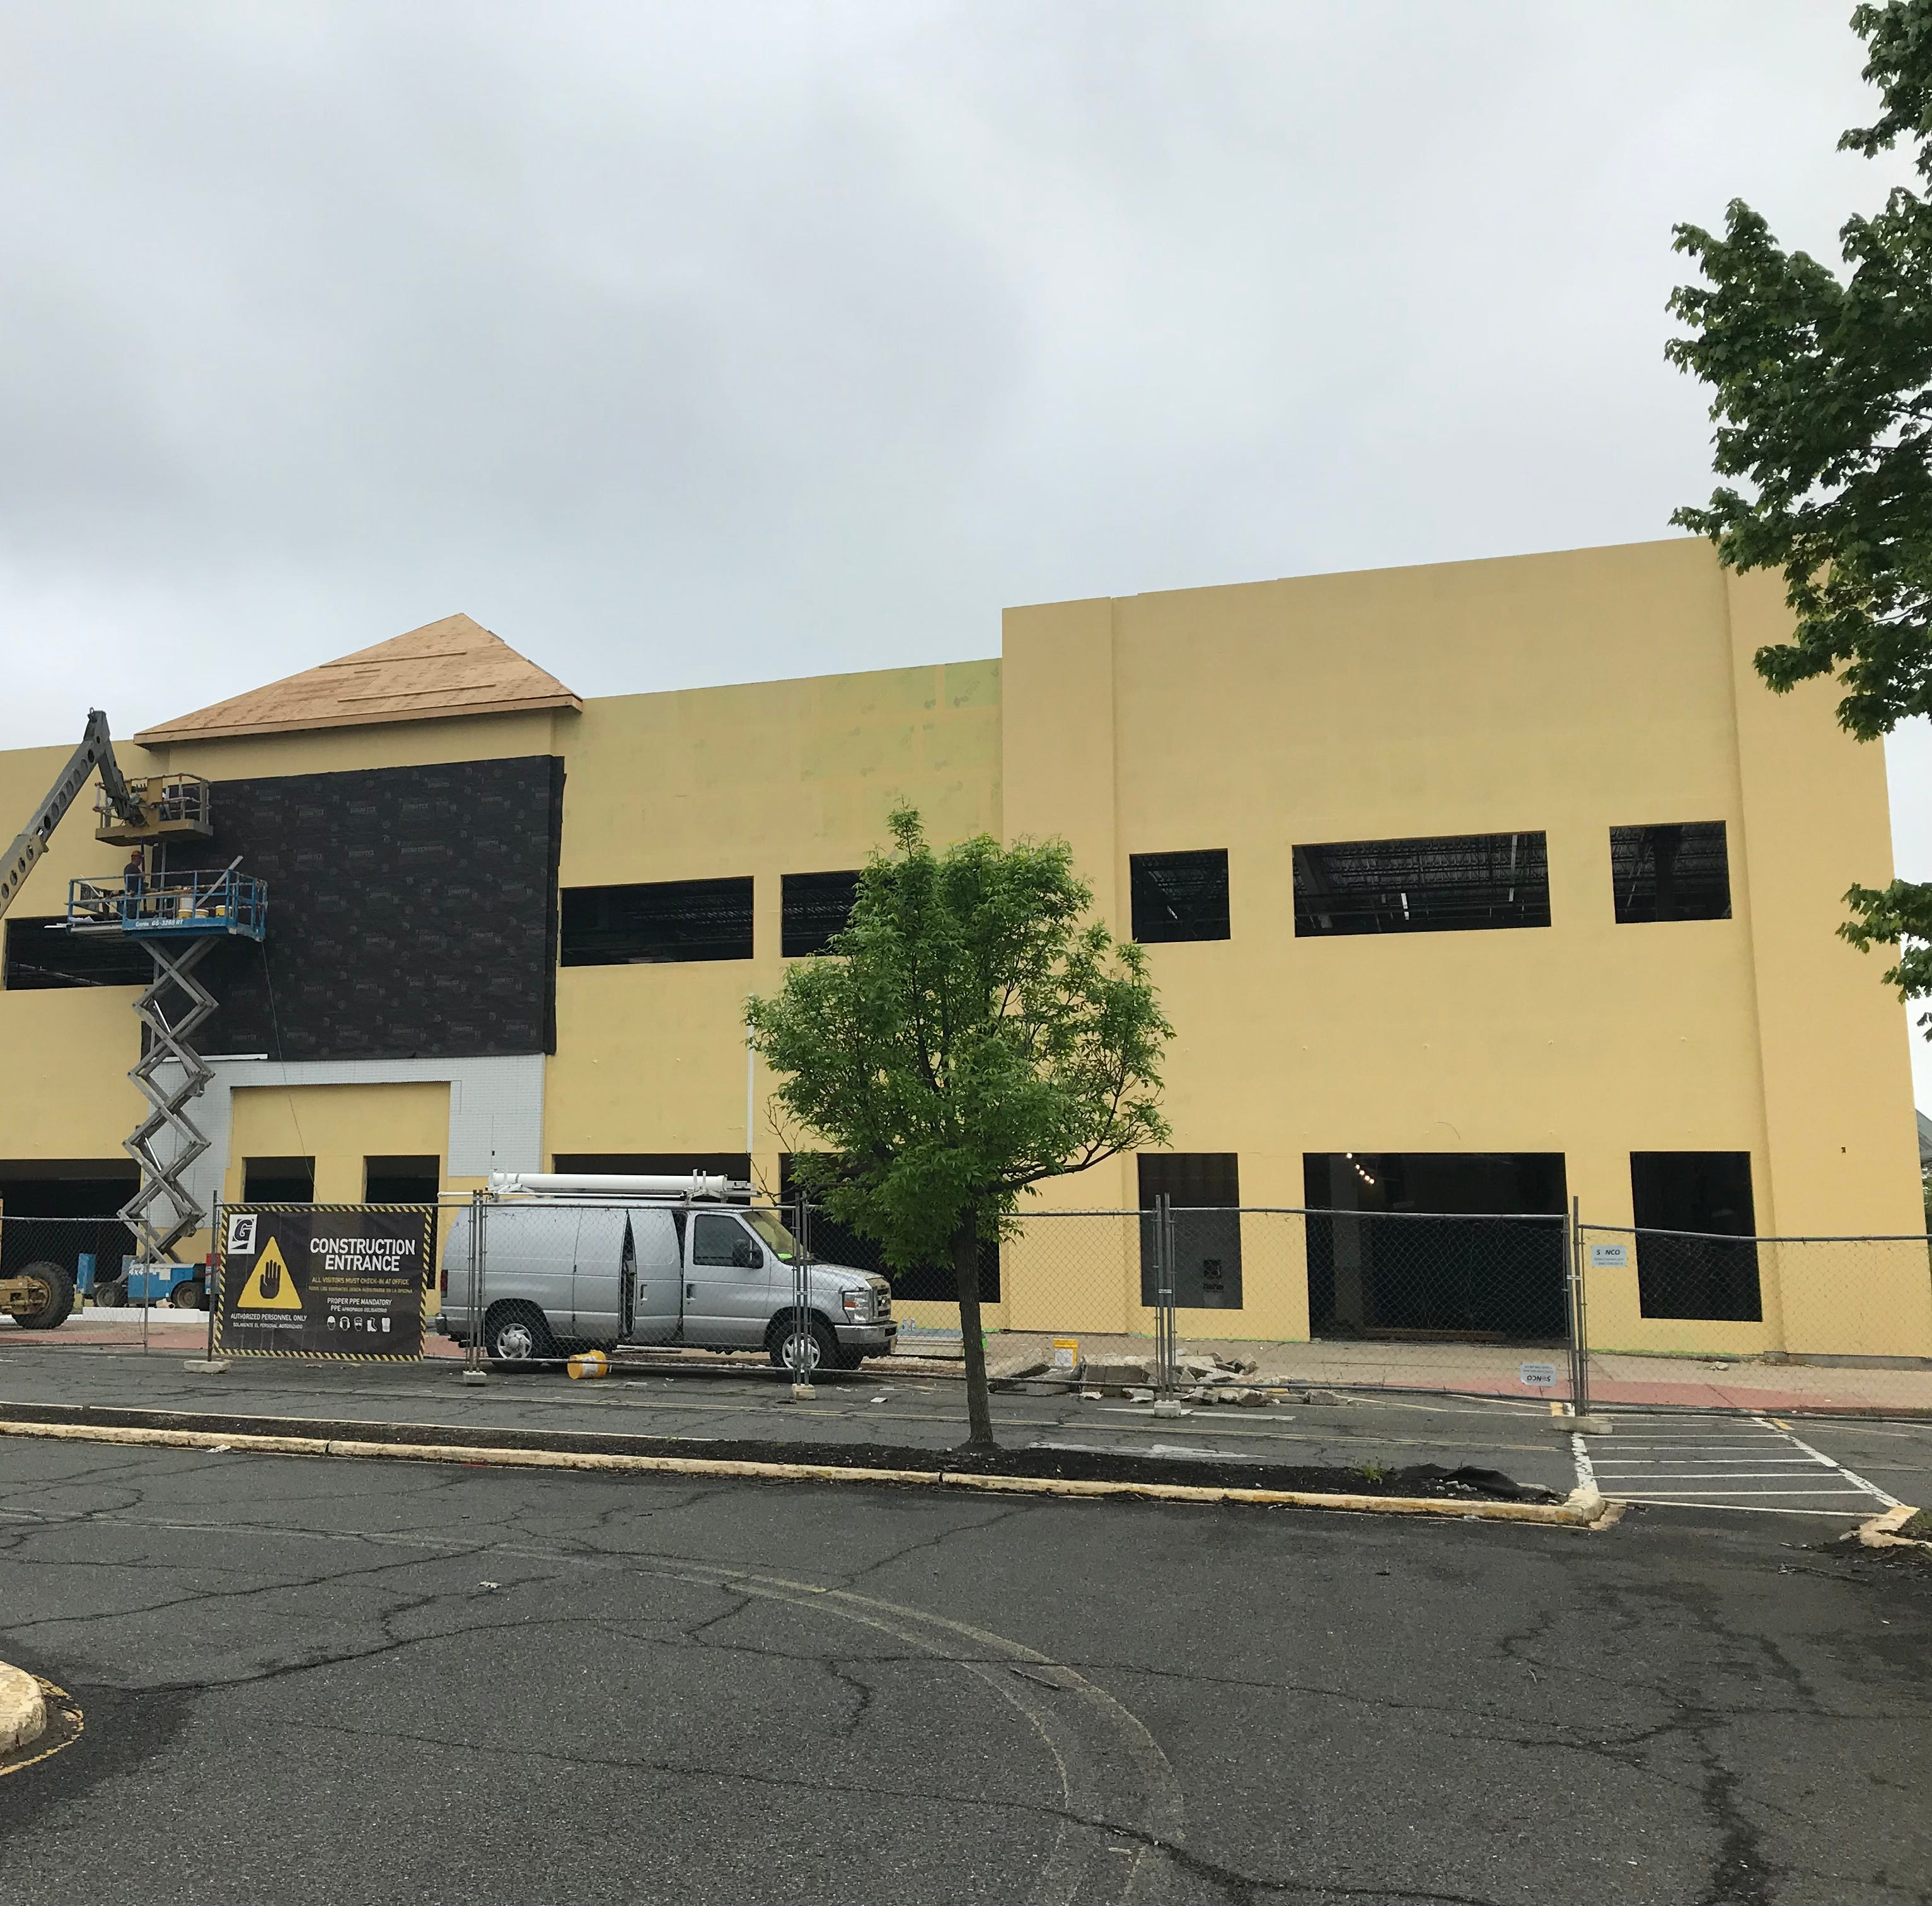 Launch East Brunswick, Crunch Fitness among new businesses coming to former Route 18 Kmart site